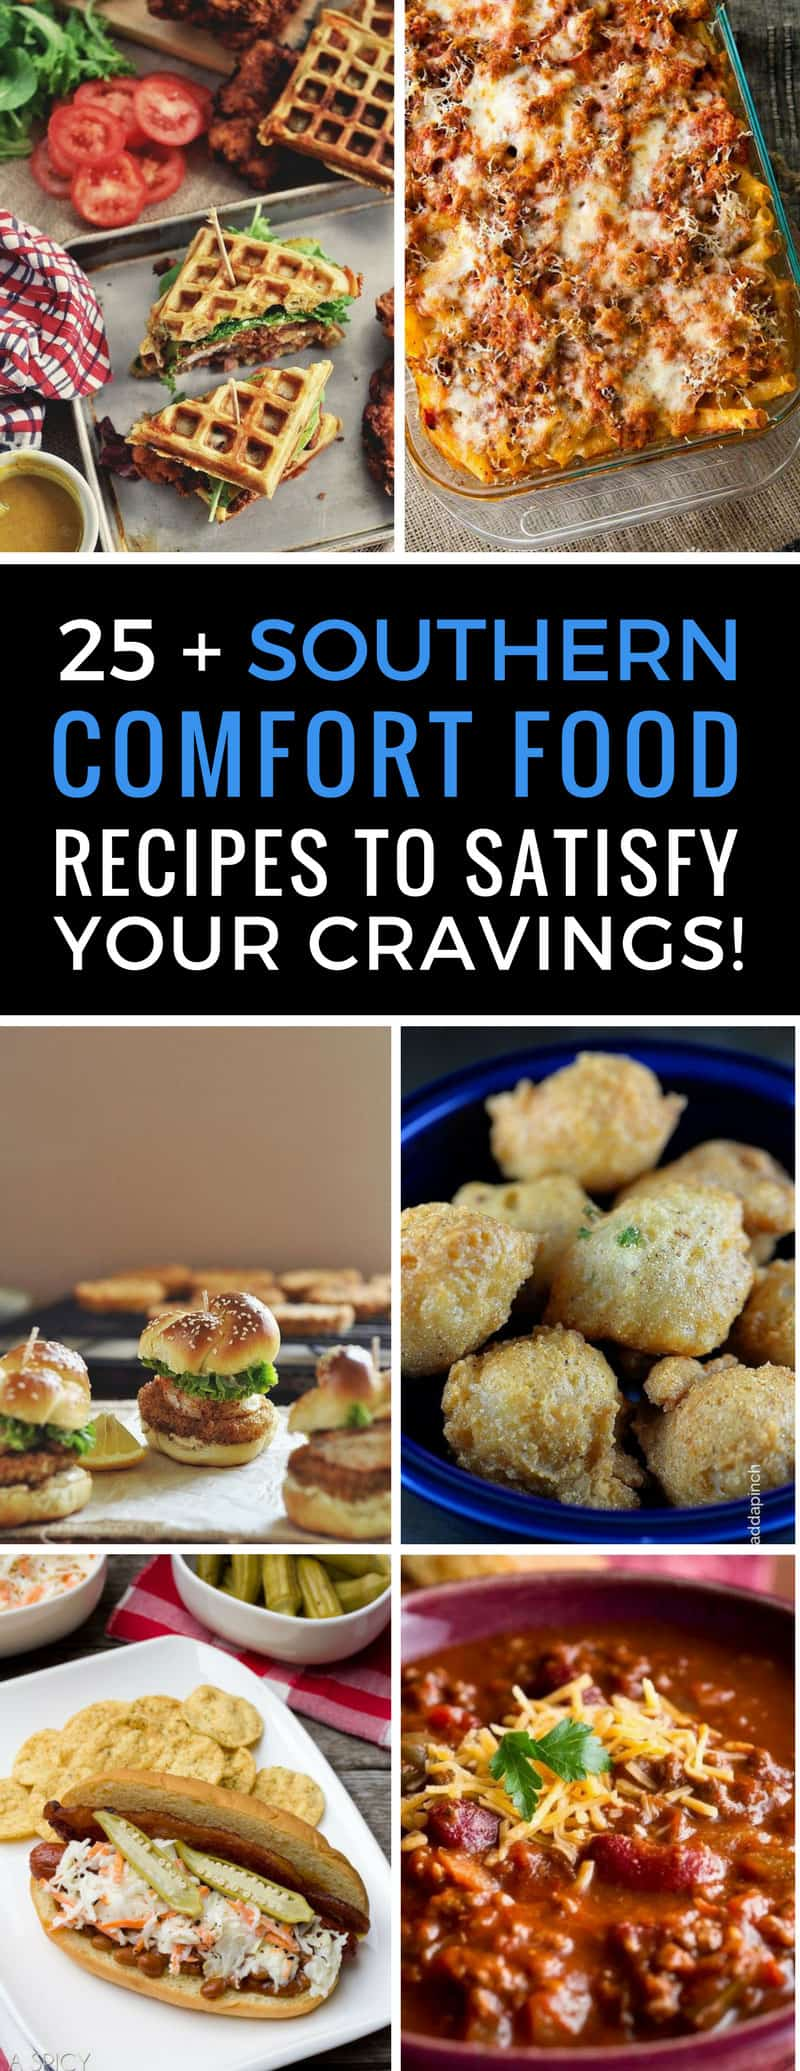 I'm drooling over these Southern comfort food recipes - and the kids are going to love them! Thanks for sharing!